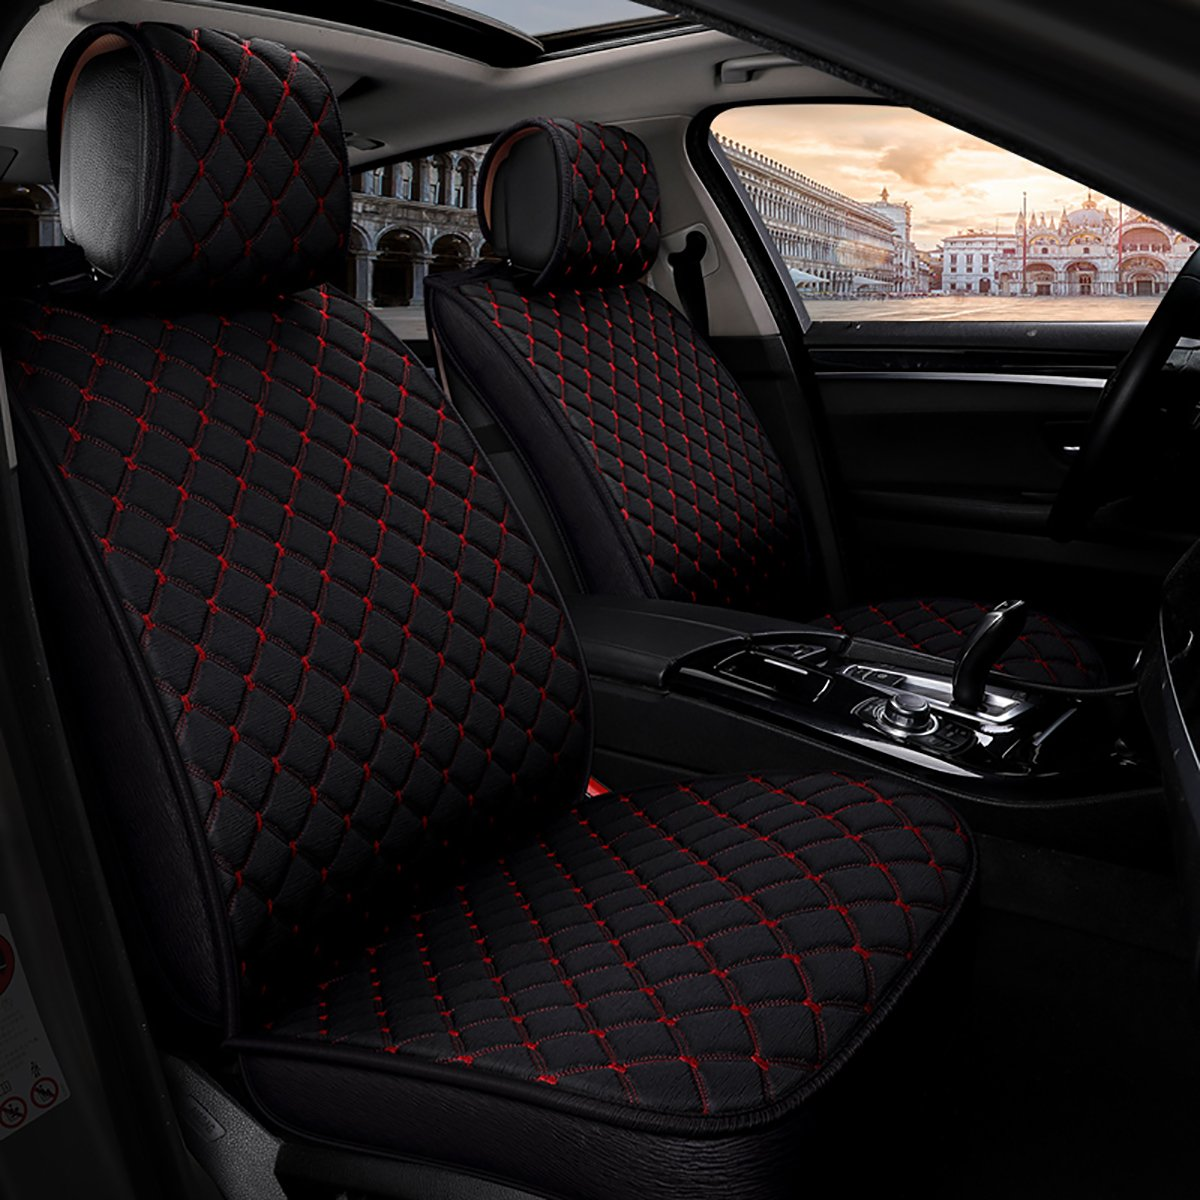 INCH EMPIRE Anti Slip Car Seat Cover Full Set Cloth Universal Fit Front and Back Breathable Dirty Proof Fabric Cushion-Adjustable Bench for 95% Types of 5 Seats Cars(Black with Red Stitch Grid) by INCH EMPIRE (Image #1)